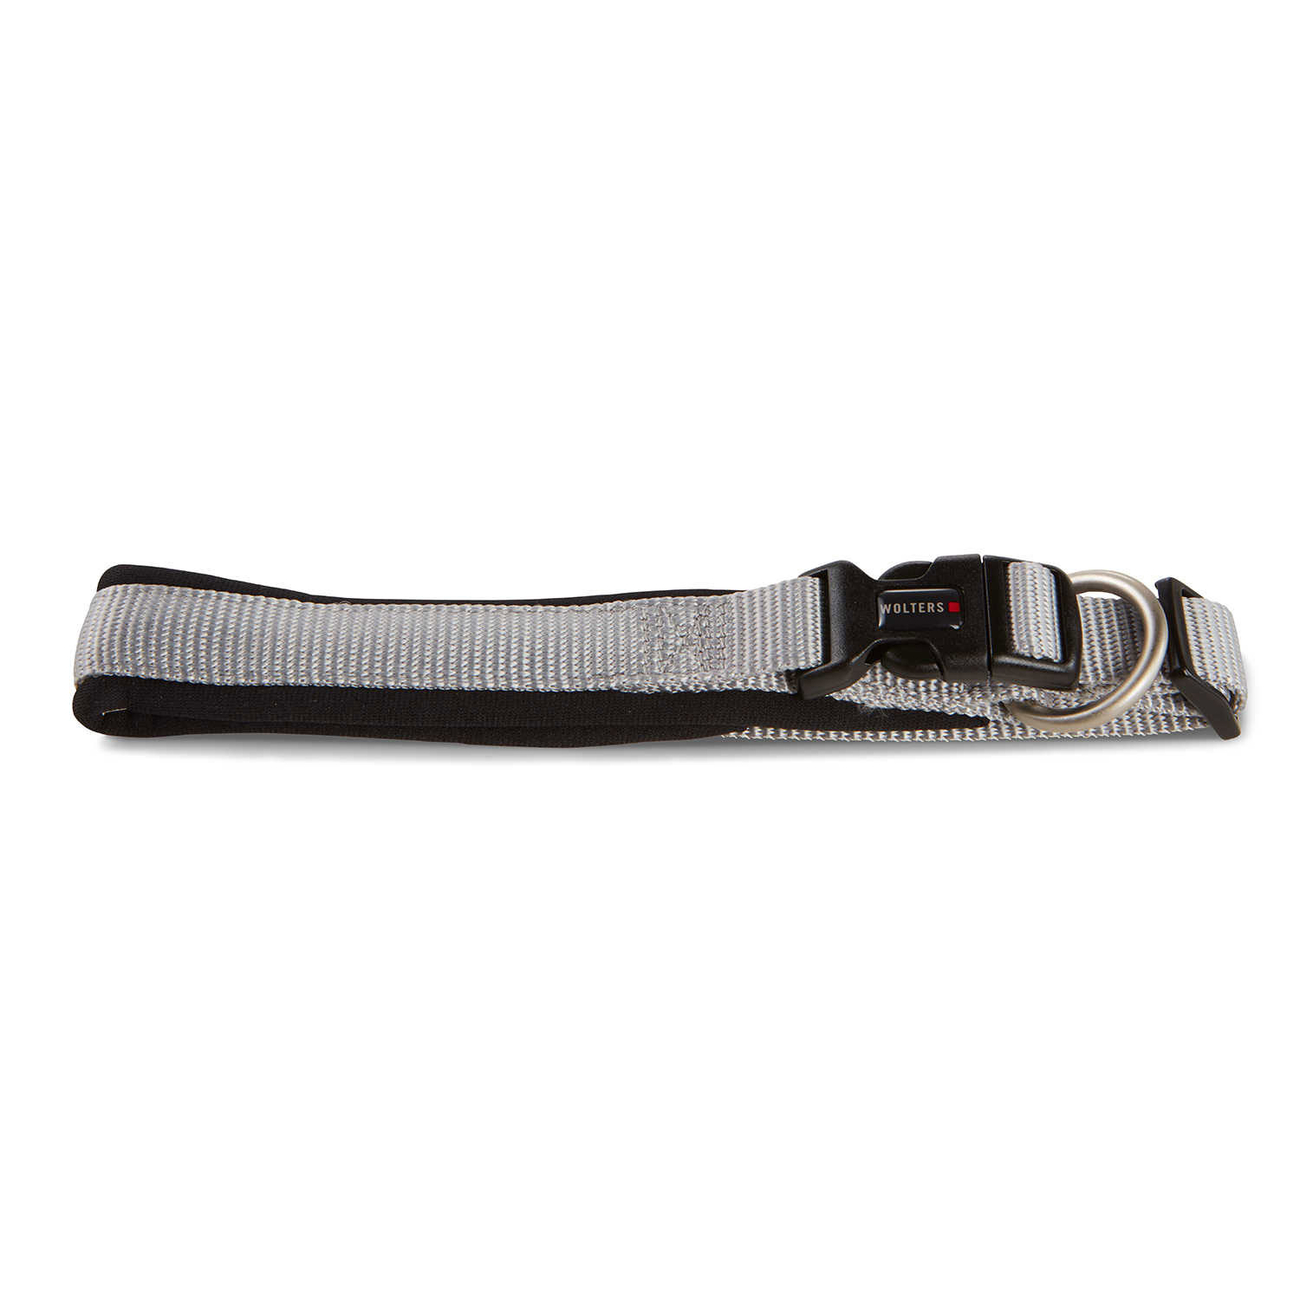 Wolters Halsband Professional Comfort, Bild 11